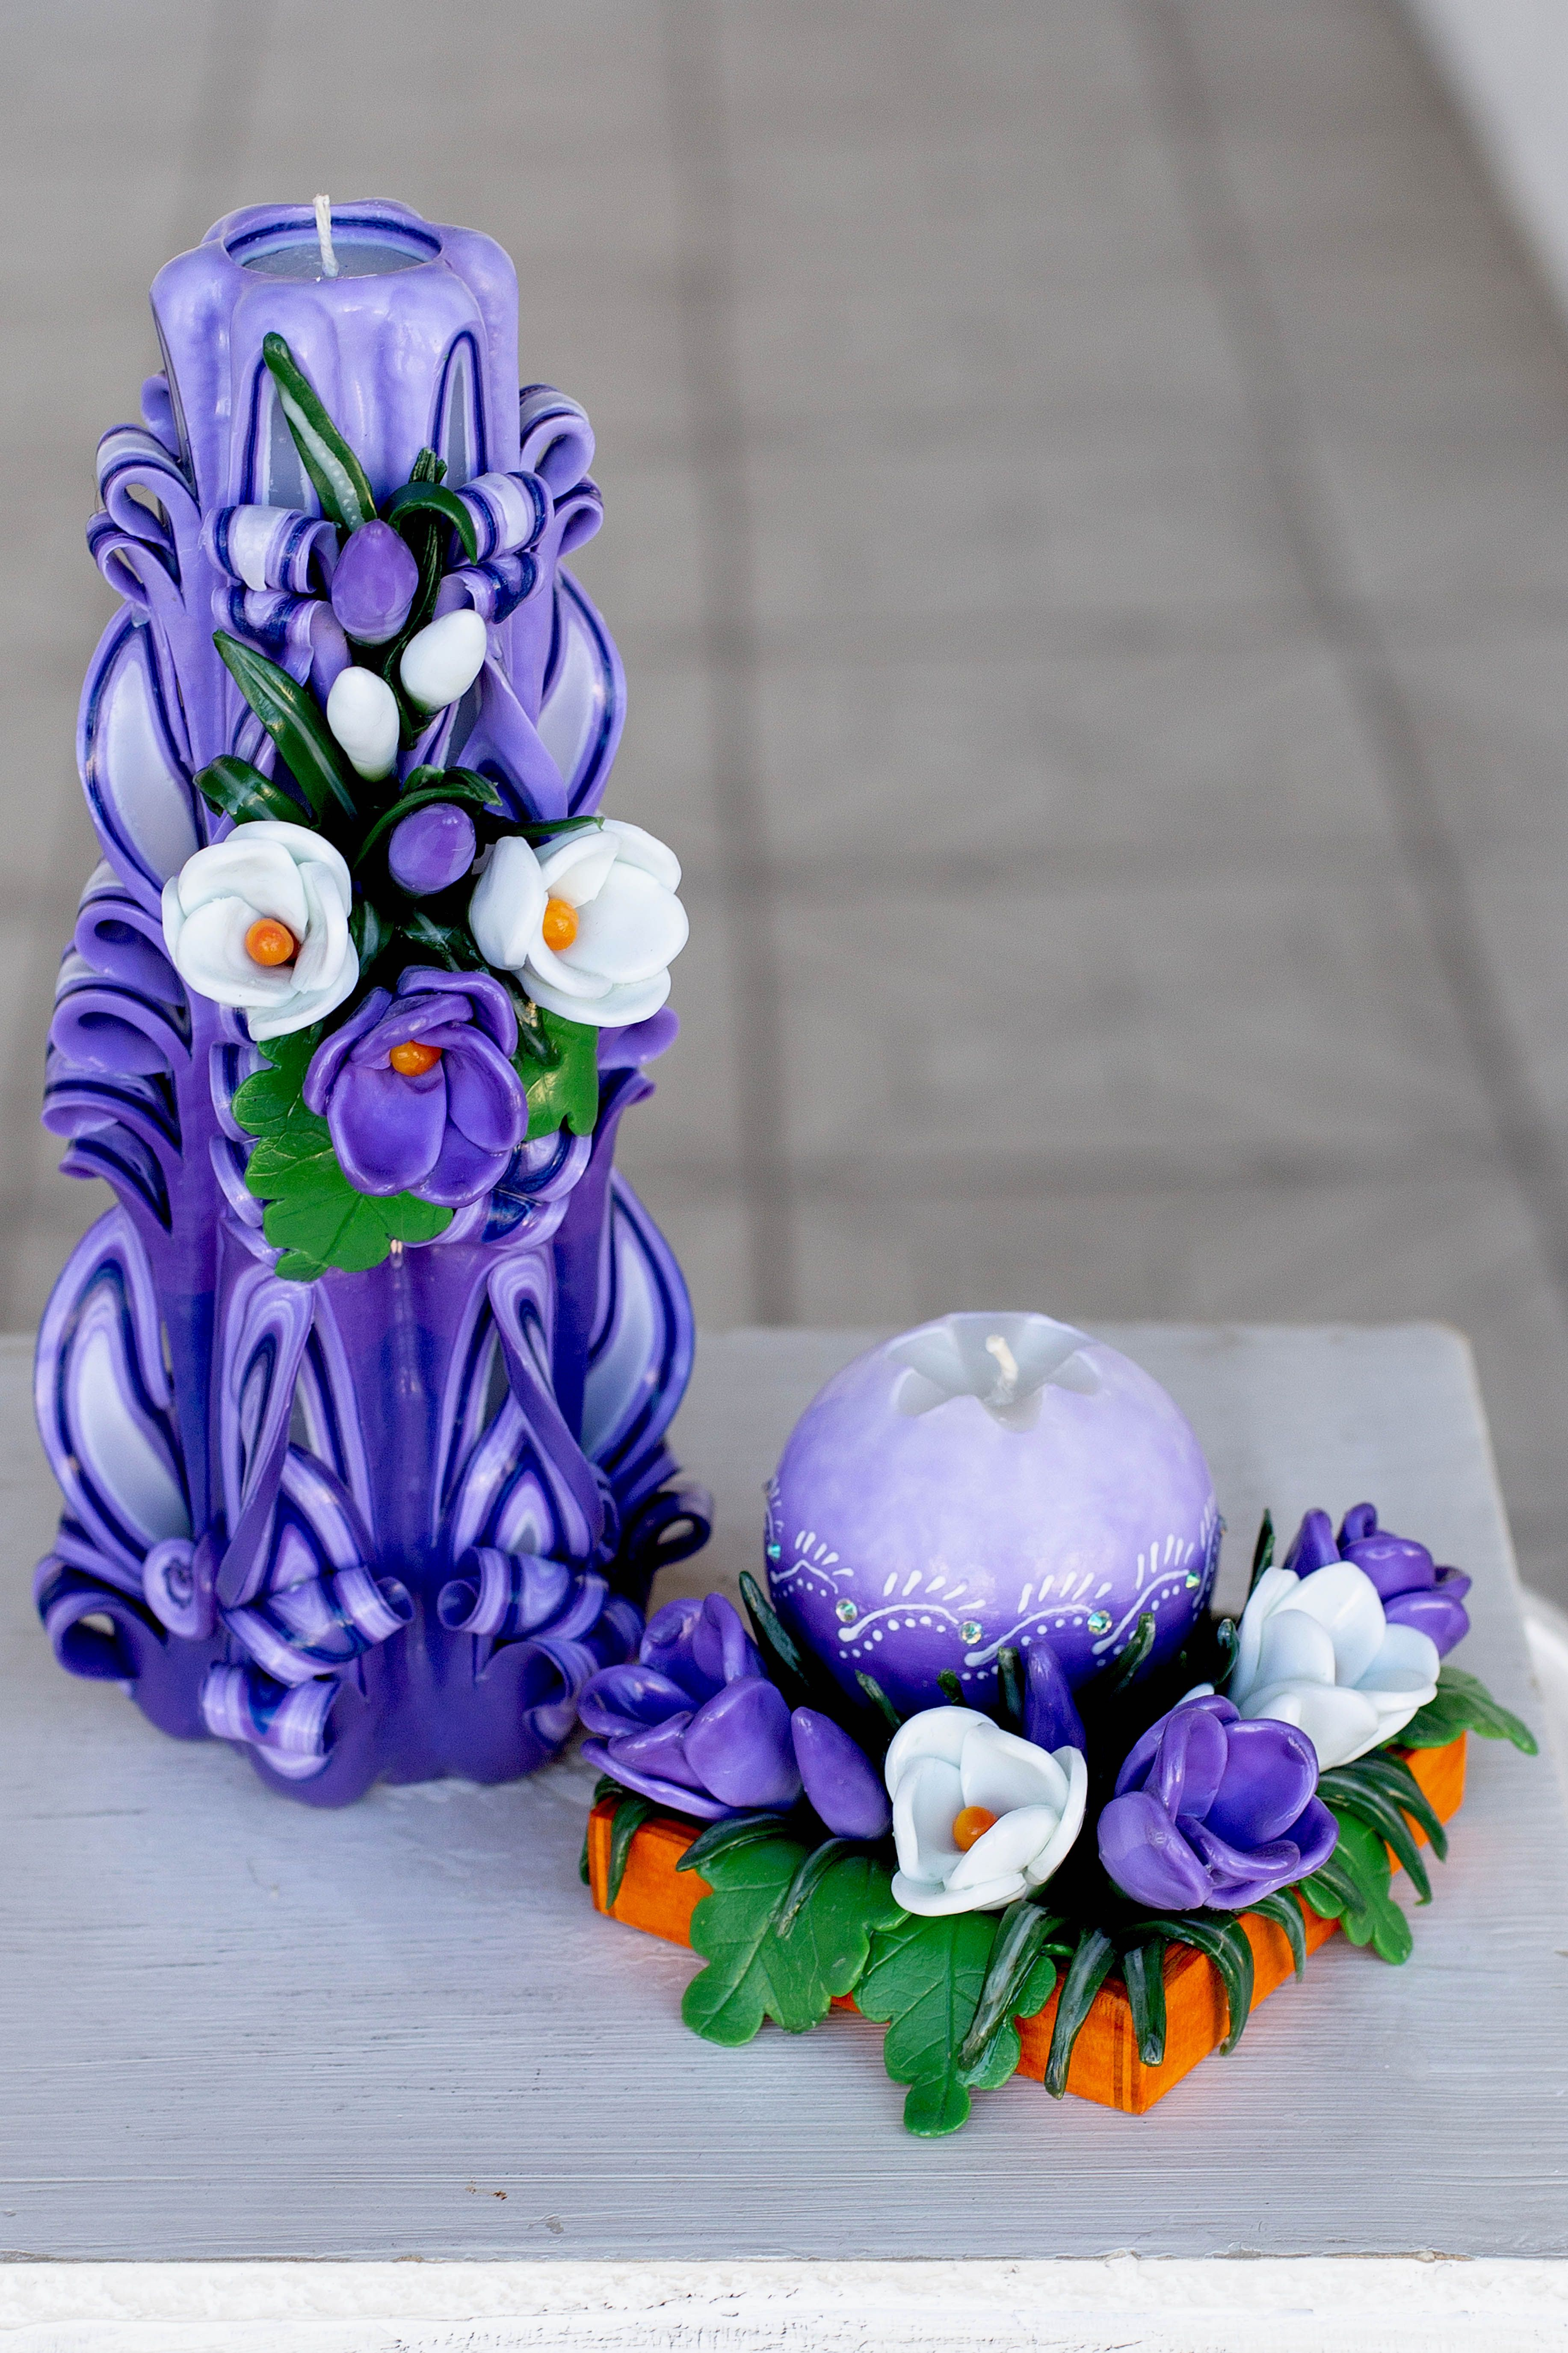 Carved Candle With White And Puple Crocuses Unique Gift For Mom